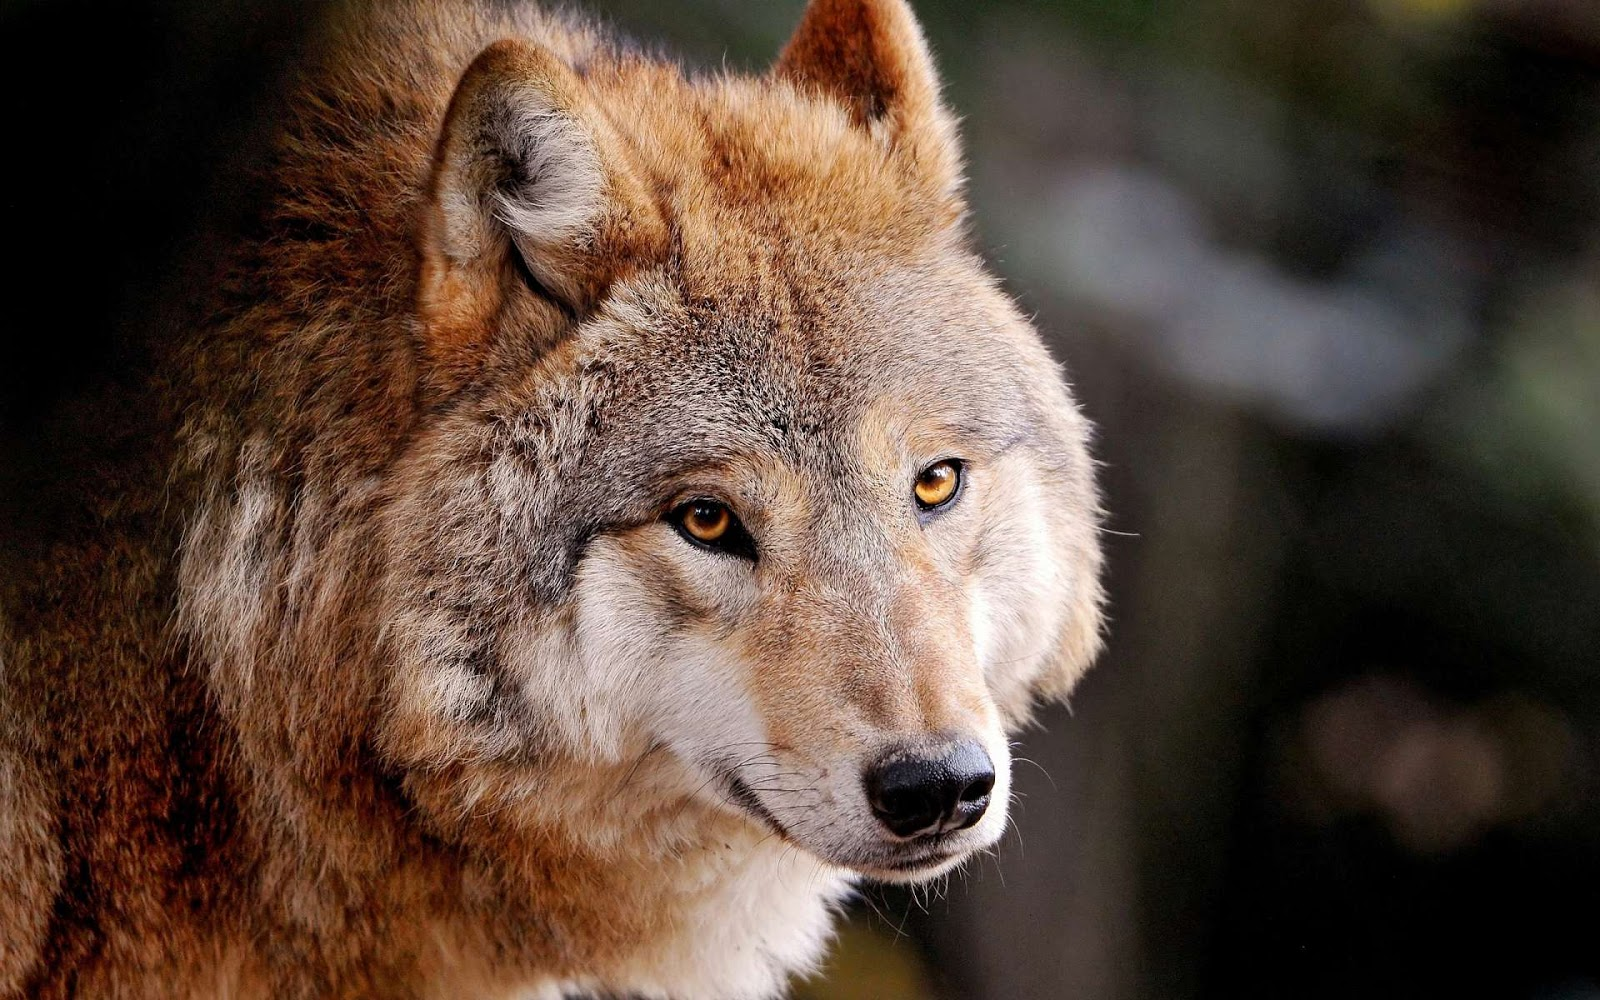 wolf wallpapers brown hd animal wolves animals friendly wild backgrounds eyes grey flickr golden beauty desktop